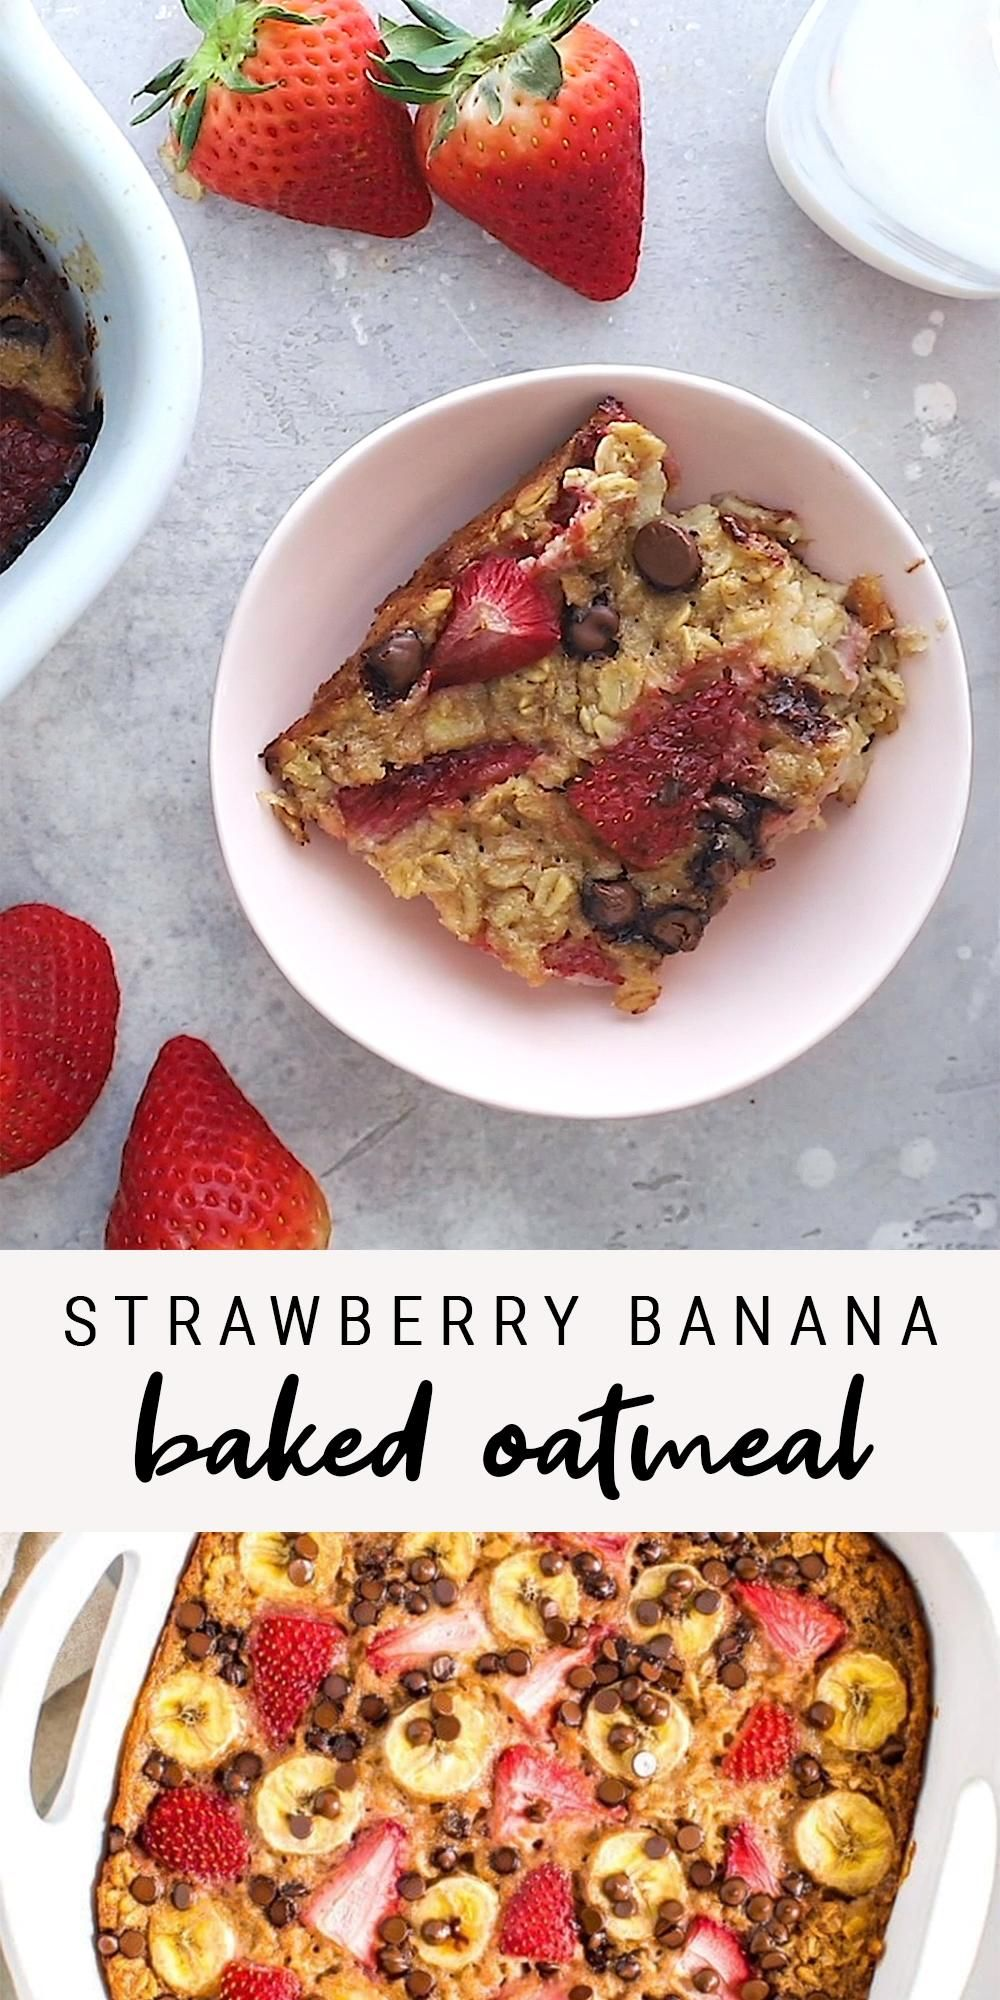 This strawberry banana baked oatmeal recipe is the perfect make ahead breakfast. Strawberry, banana and chocolate… what could be better? Perfect for brunch, breakfast and meal prepping! #eatingbirdfood #bakedoatmeal #strawberrybanana #chocolatechip #healthybreakfast #mealprep #cleaneating